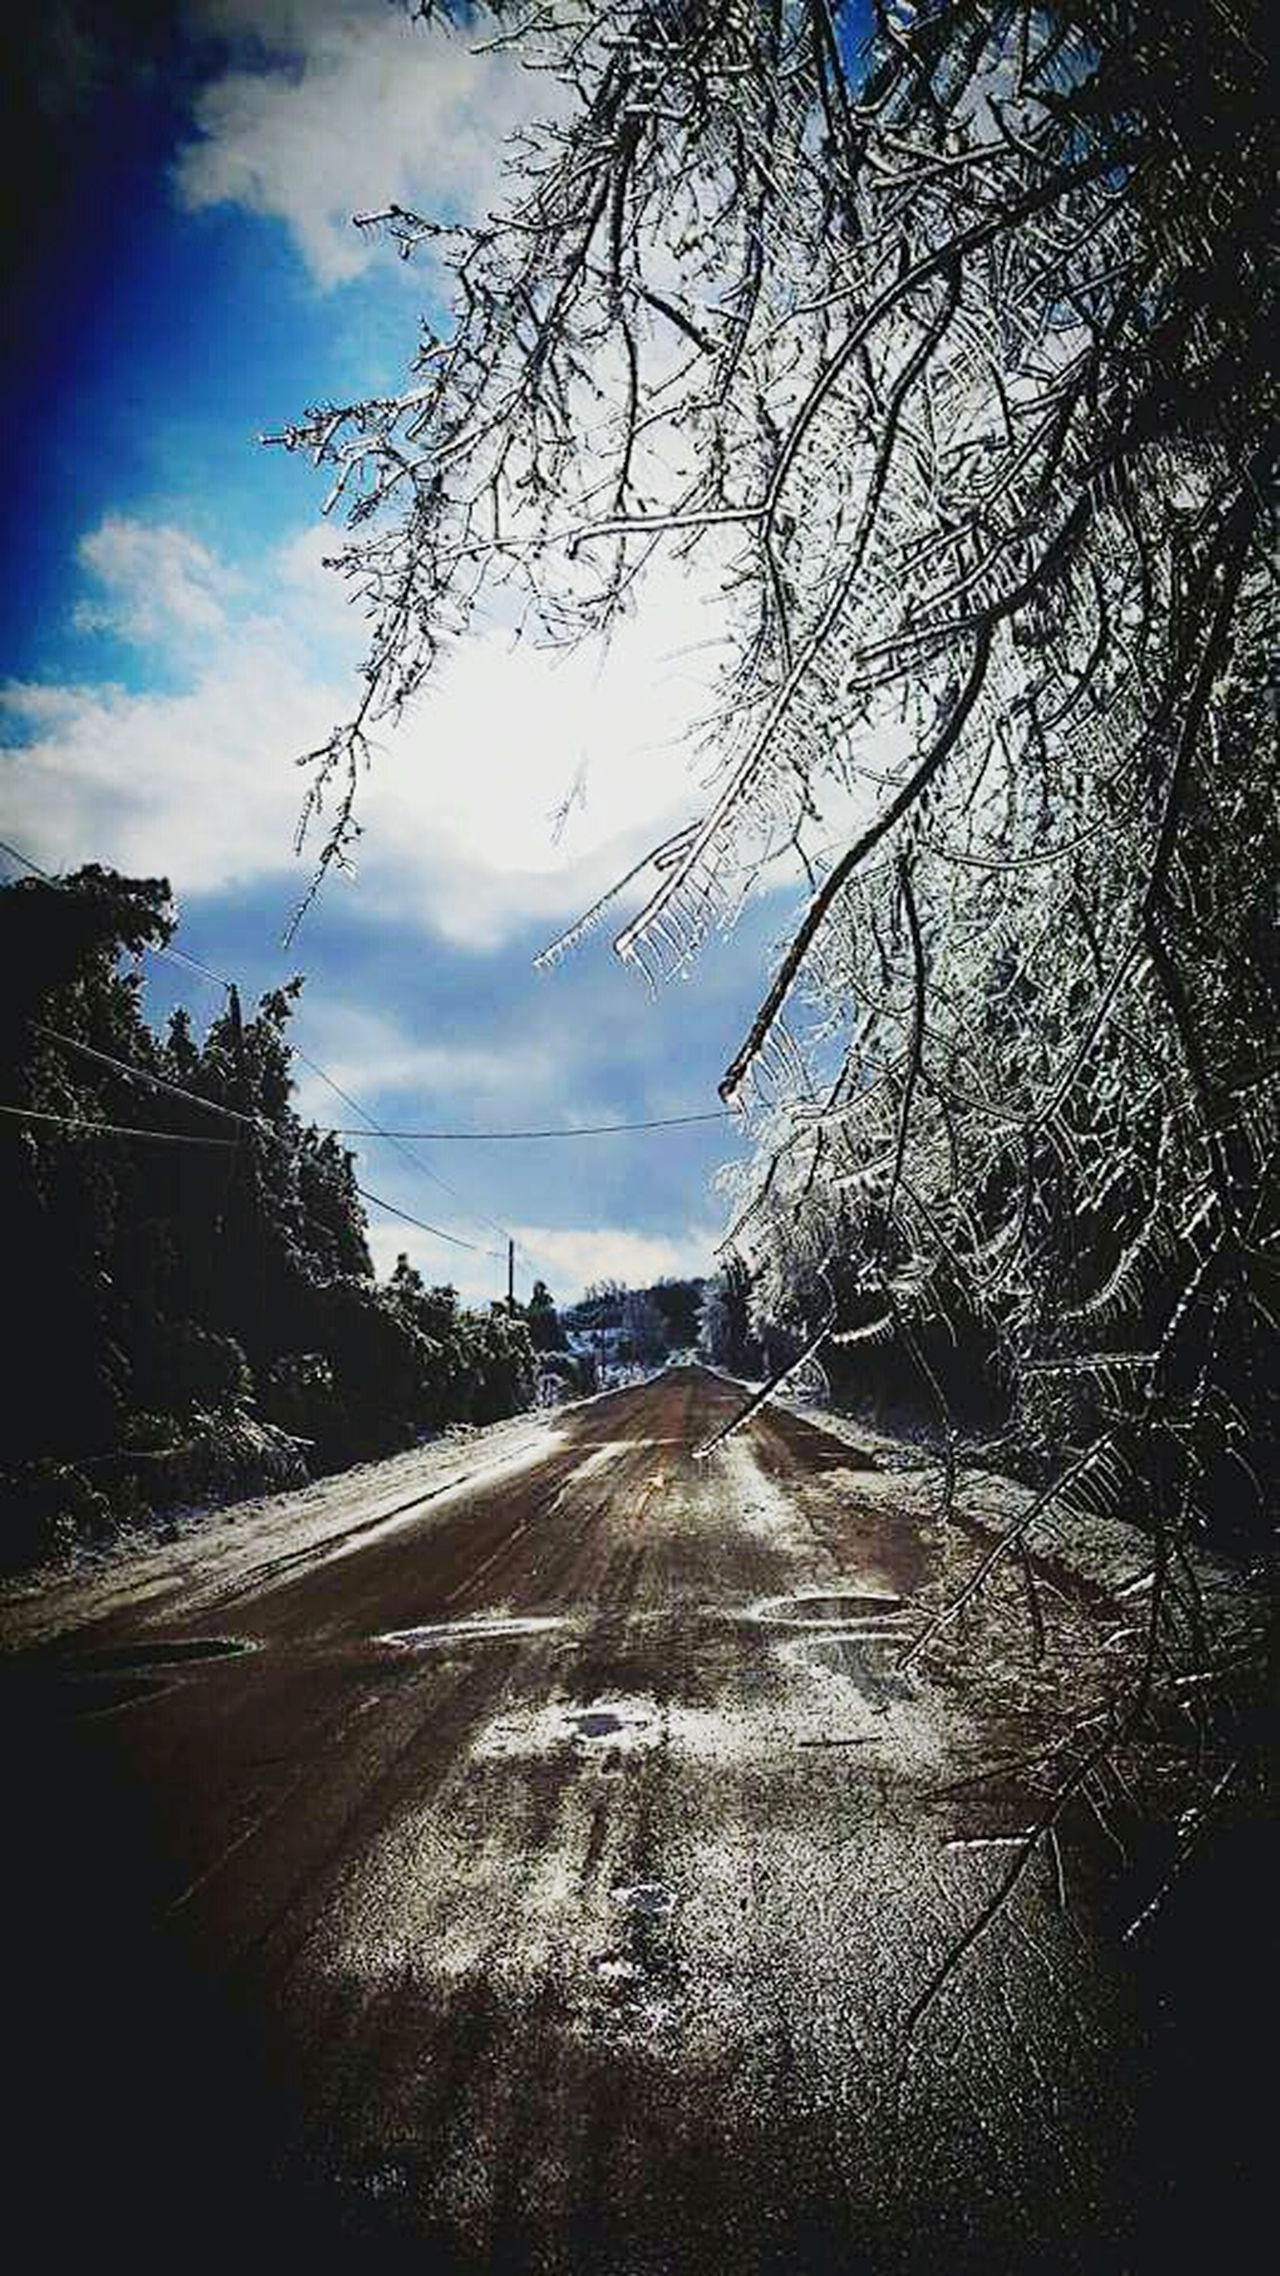 EyeEmNewHere Country Girl Eye For Photography Roadside Canadianwinter Ice Storm Icicles Dirtroads Viasindios Tree Beauty In Nature The Great Outdoors - 2017 EyeEm Awards